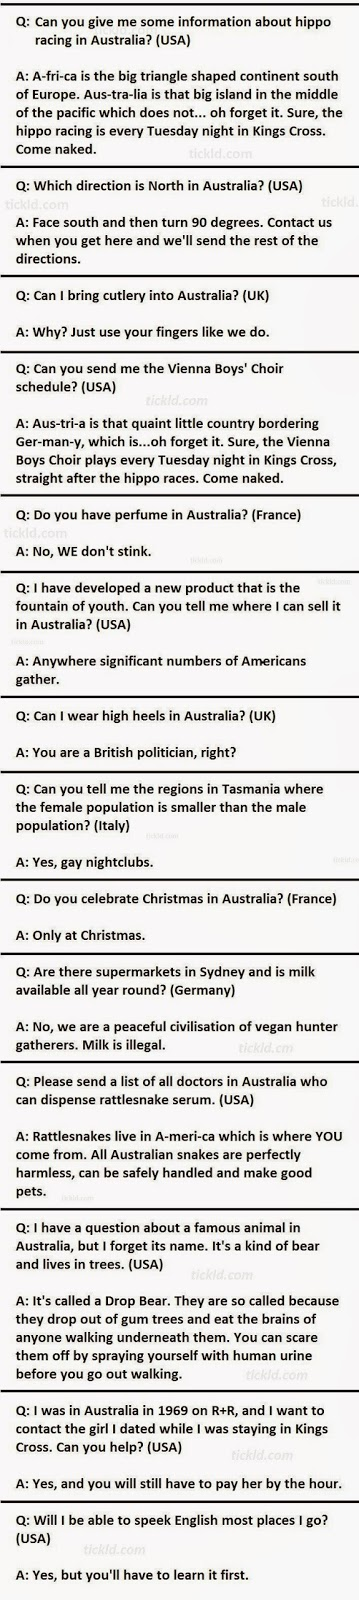 20 Question For Travel to Australia